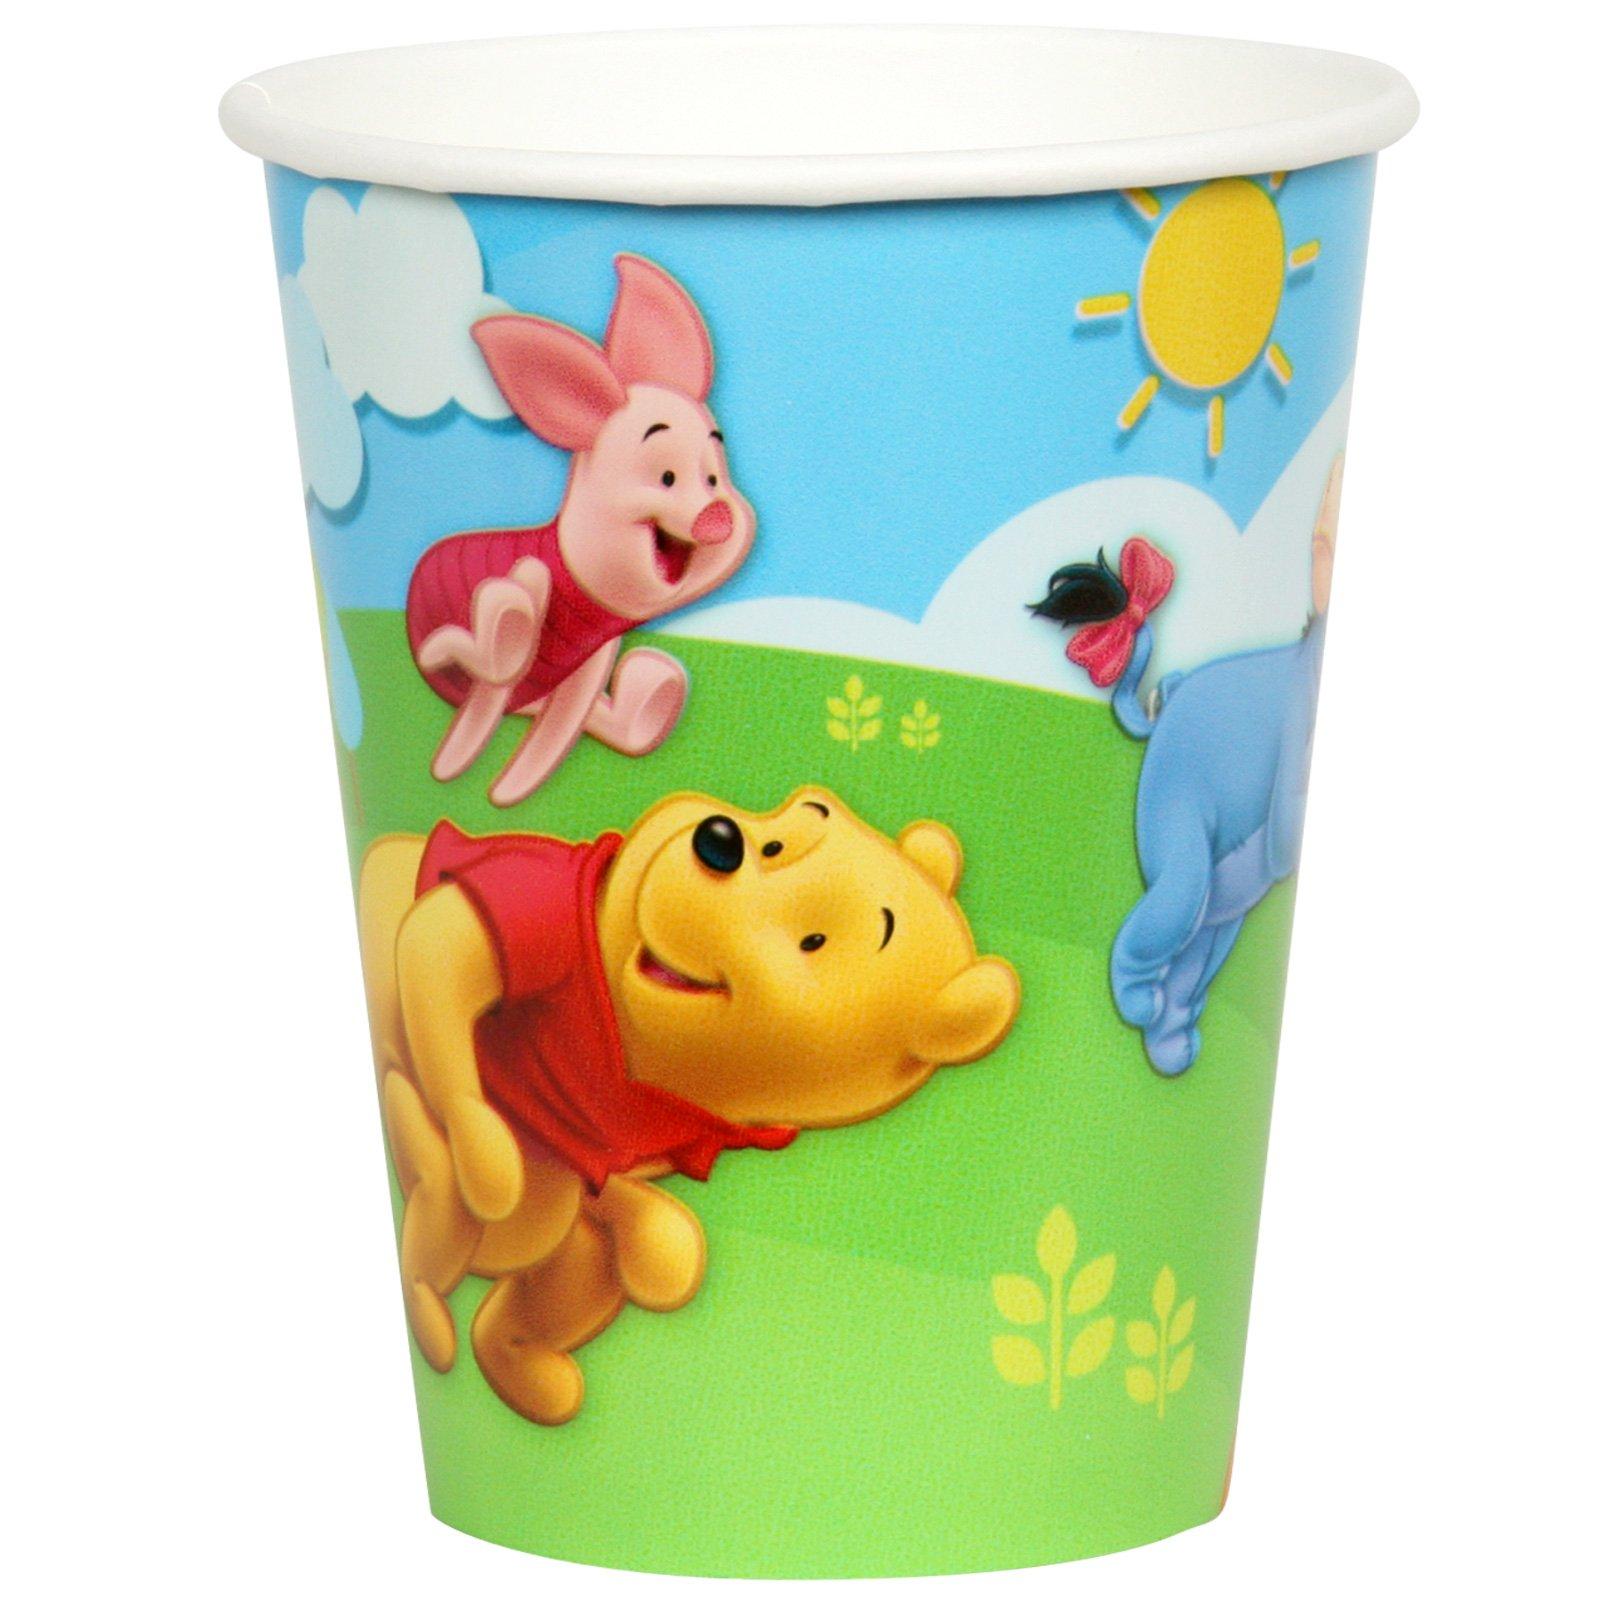 Pooh and Friends 9 oz. Paper Cups (8 count)